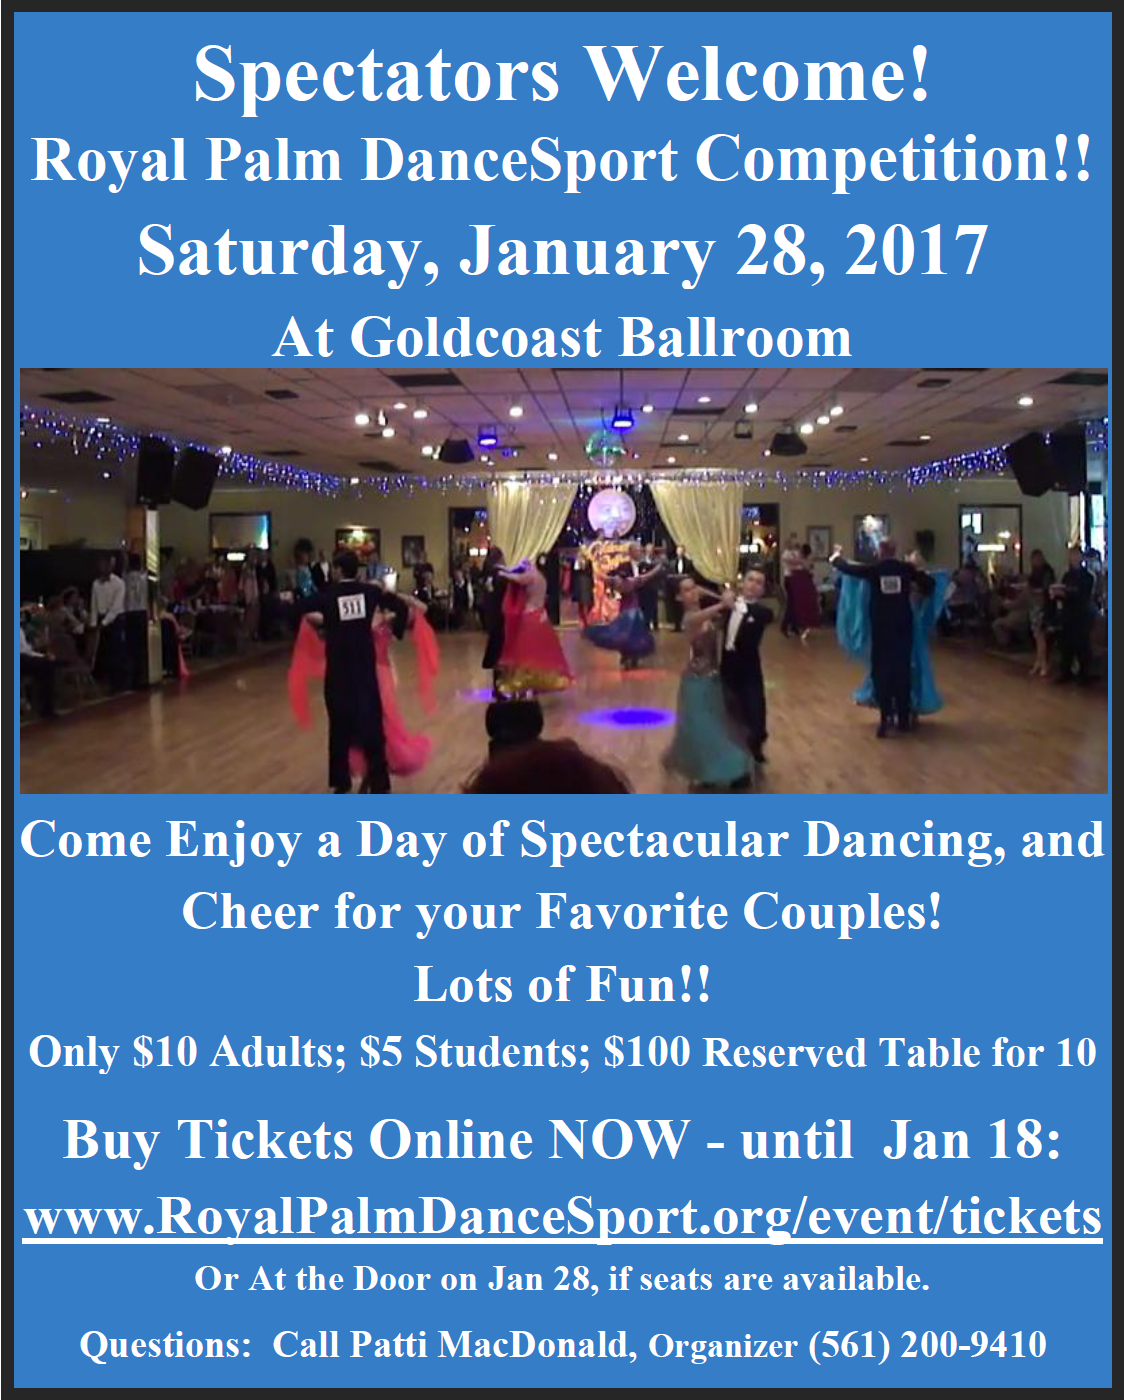 Click to Print Flyer: Spectators Welcome - Royal Palm Dancesport Competition - All Day January 28, 2017 at Goldcoast Ballroom